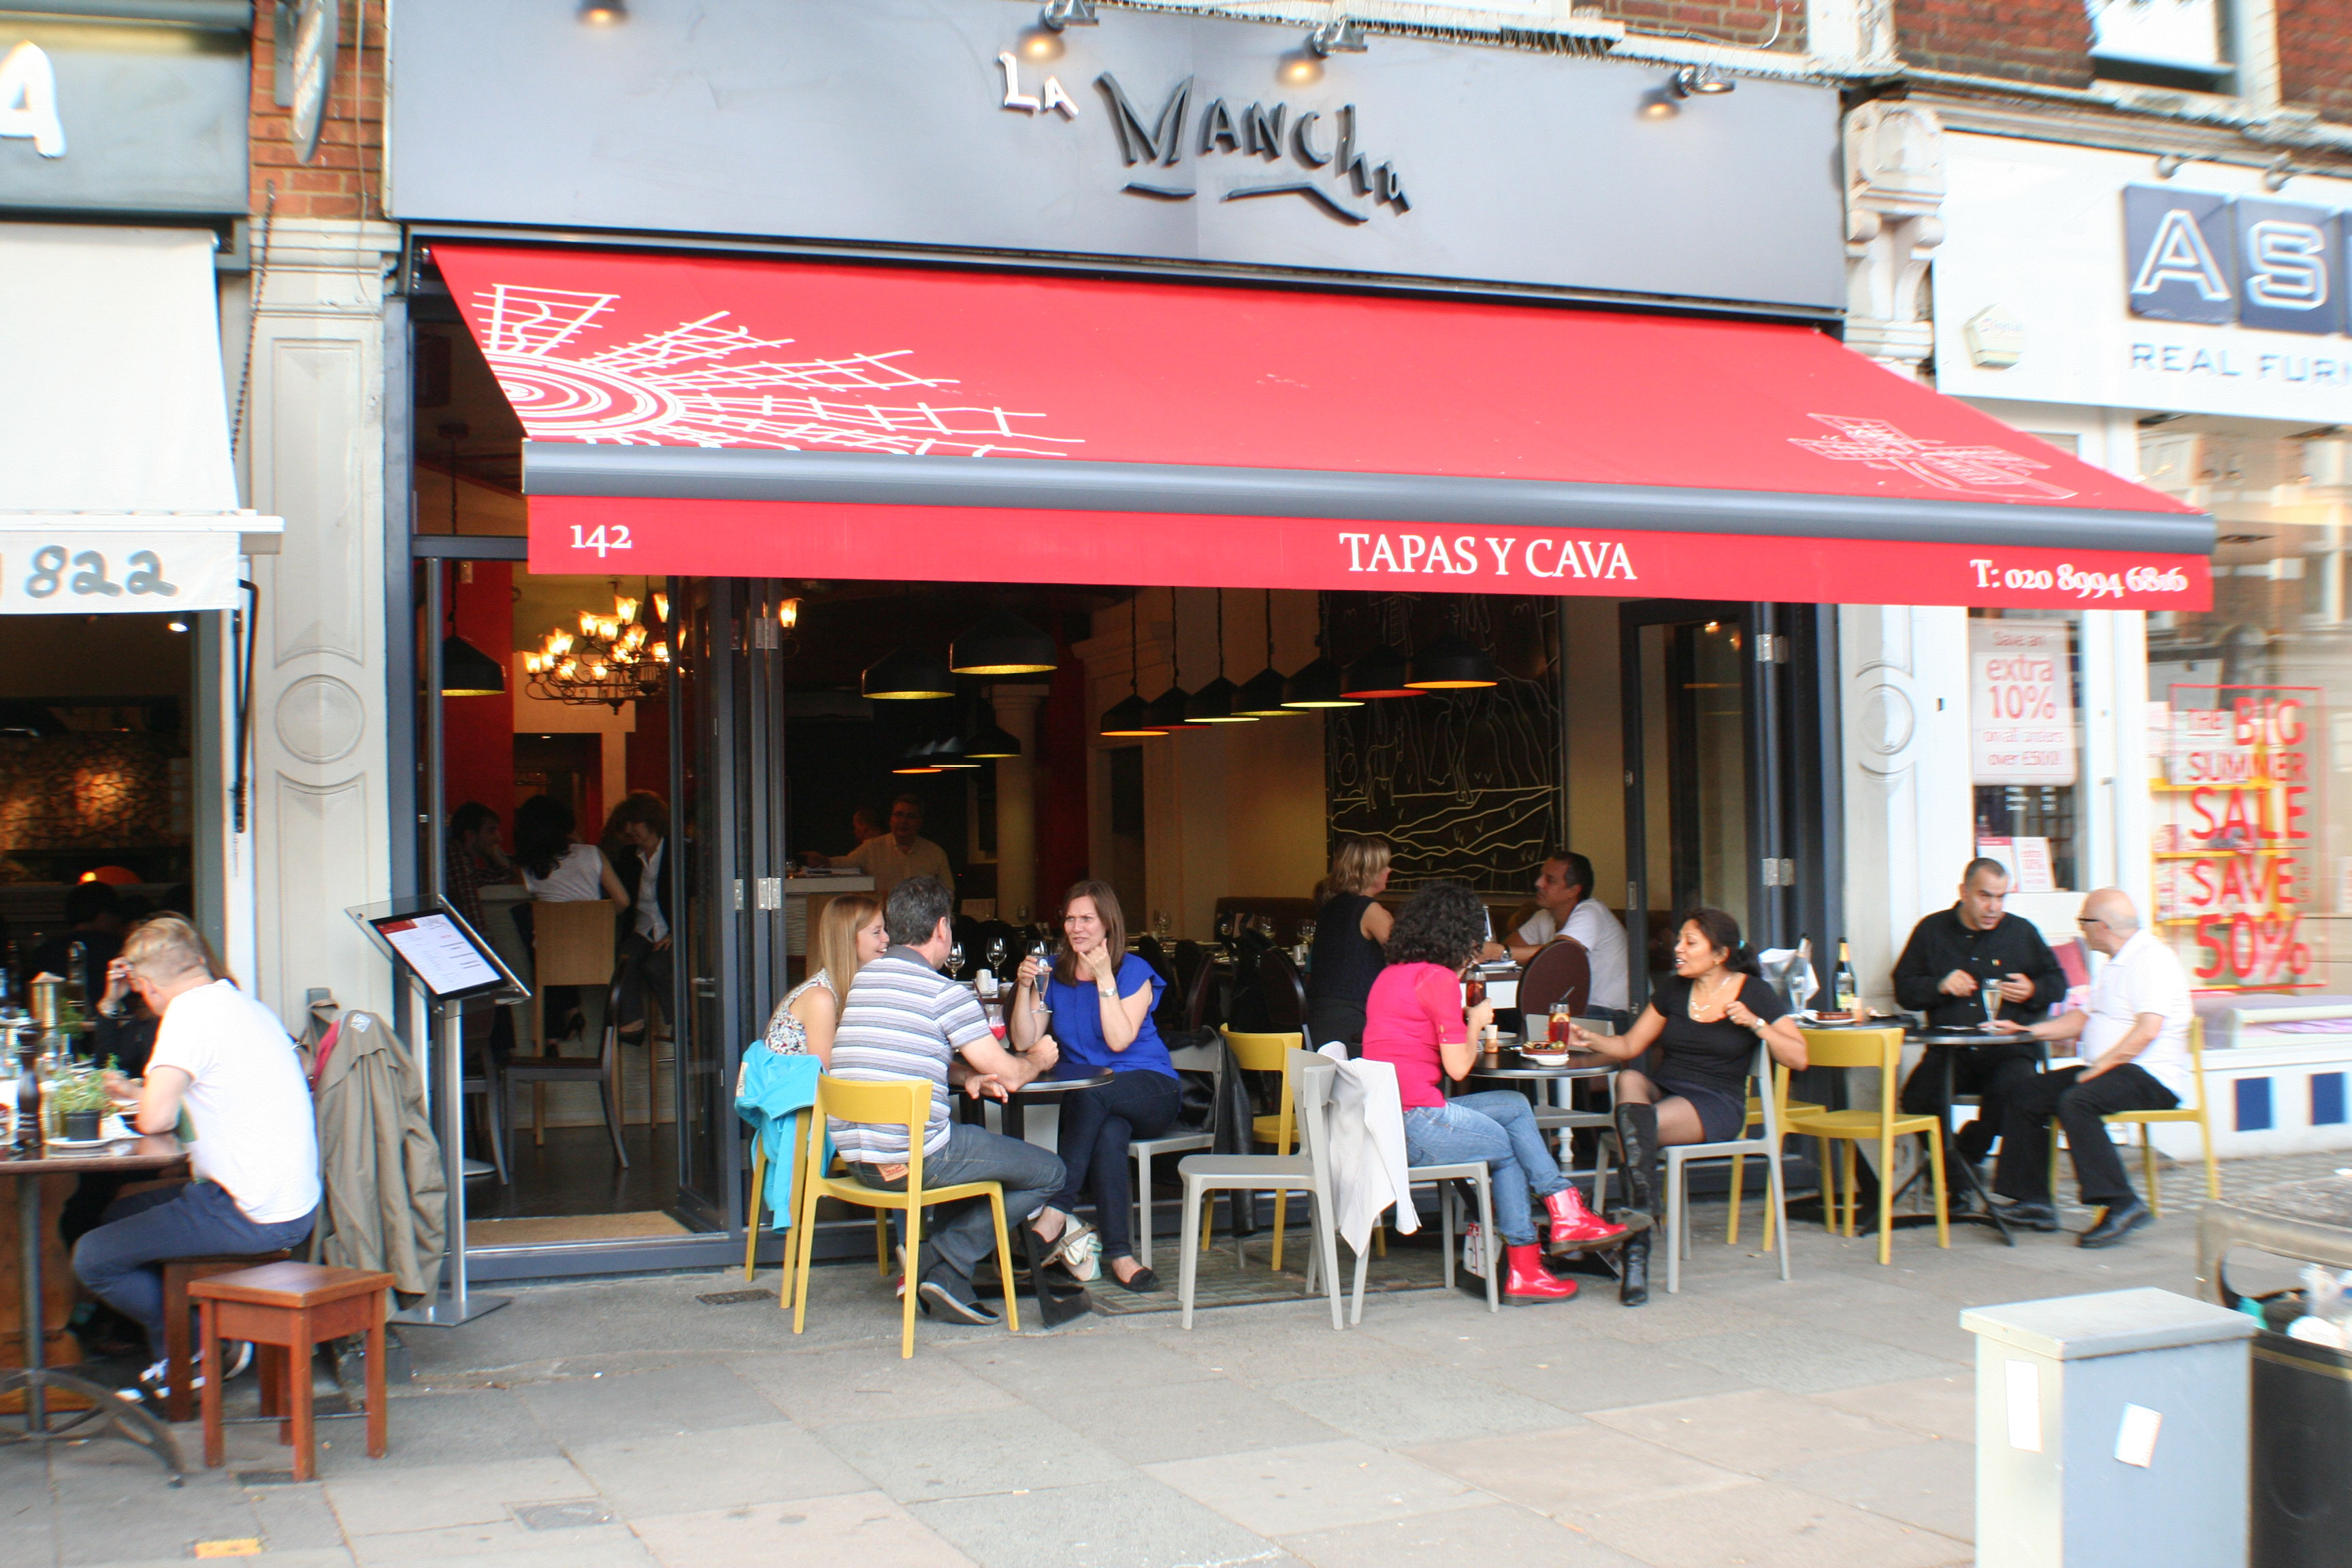 La Mancha - Chiswick - London